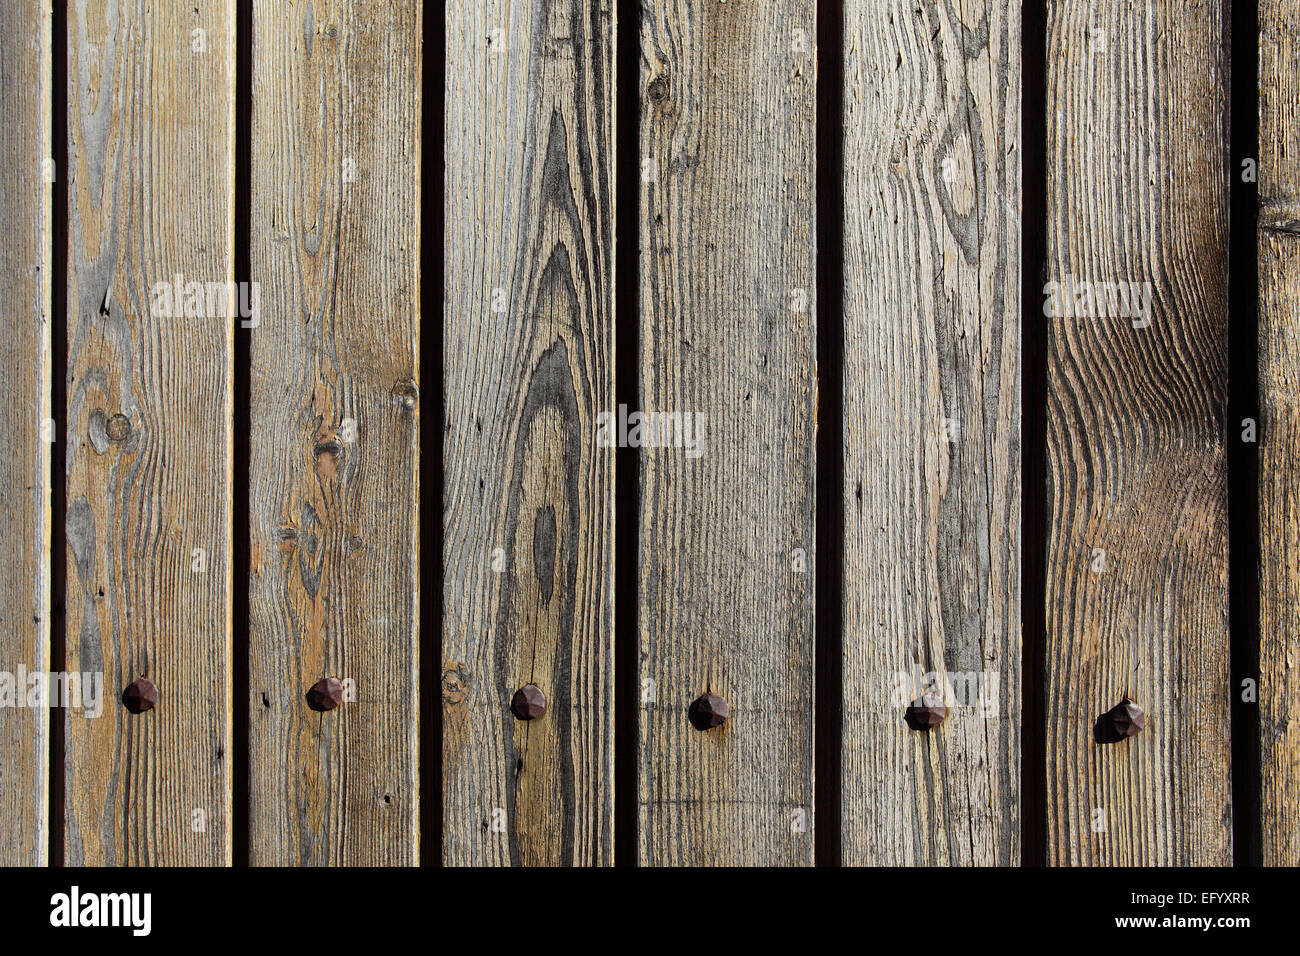 Texture of old wood planks close-up - Stock Image